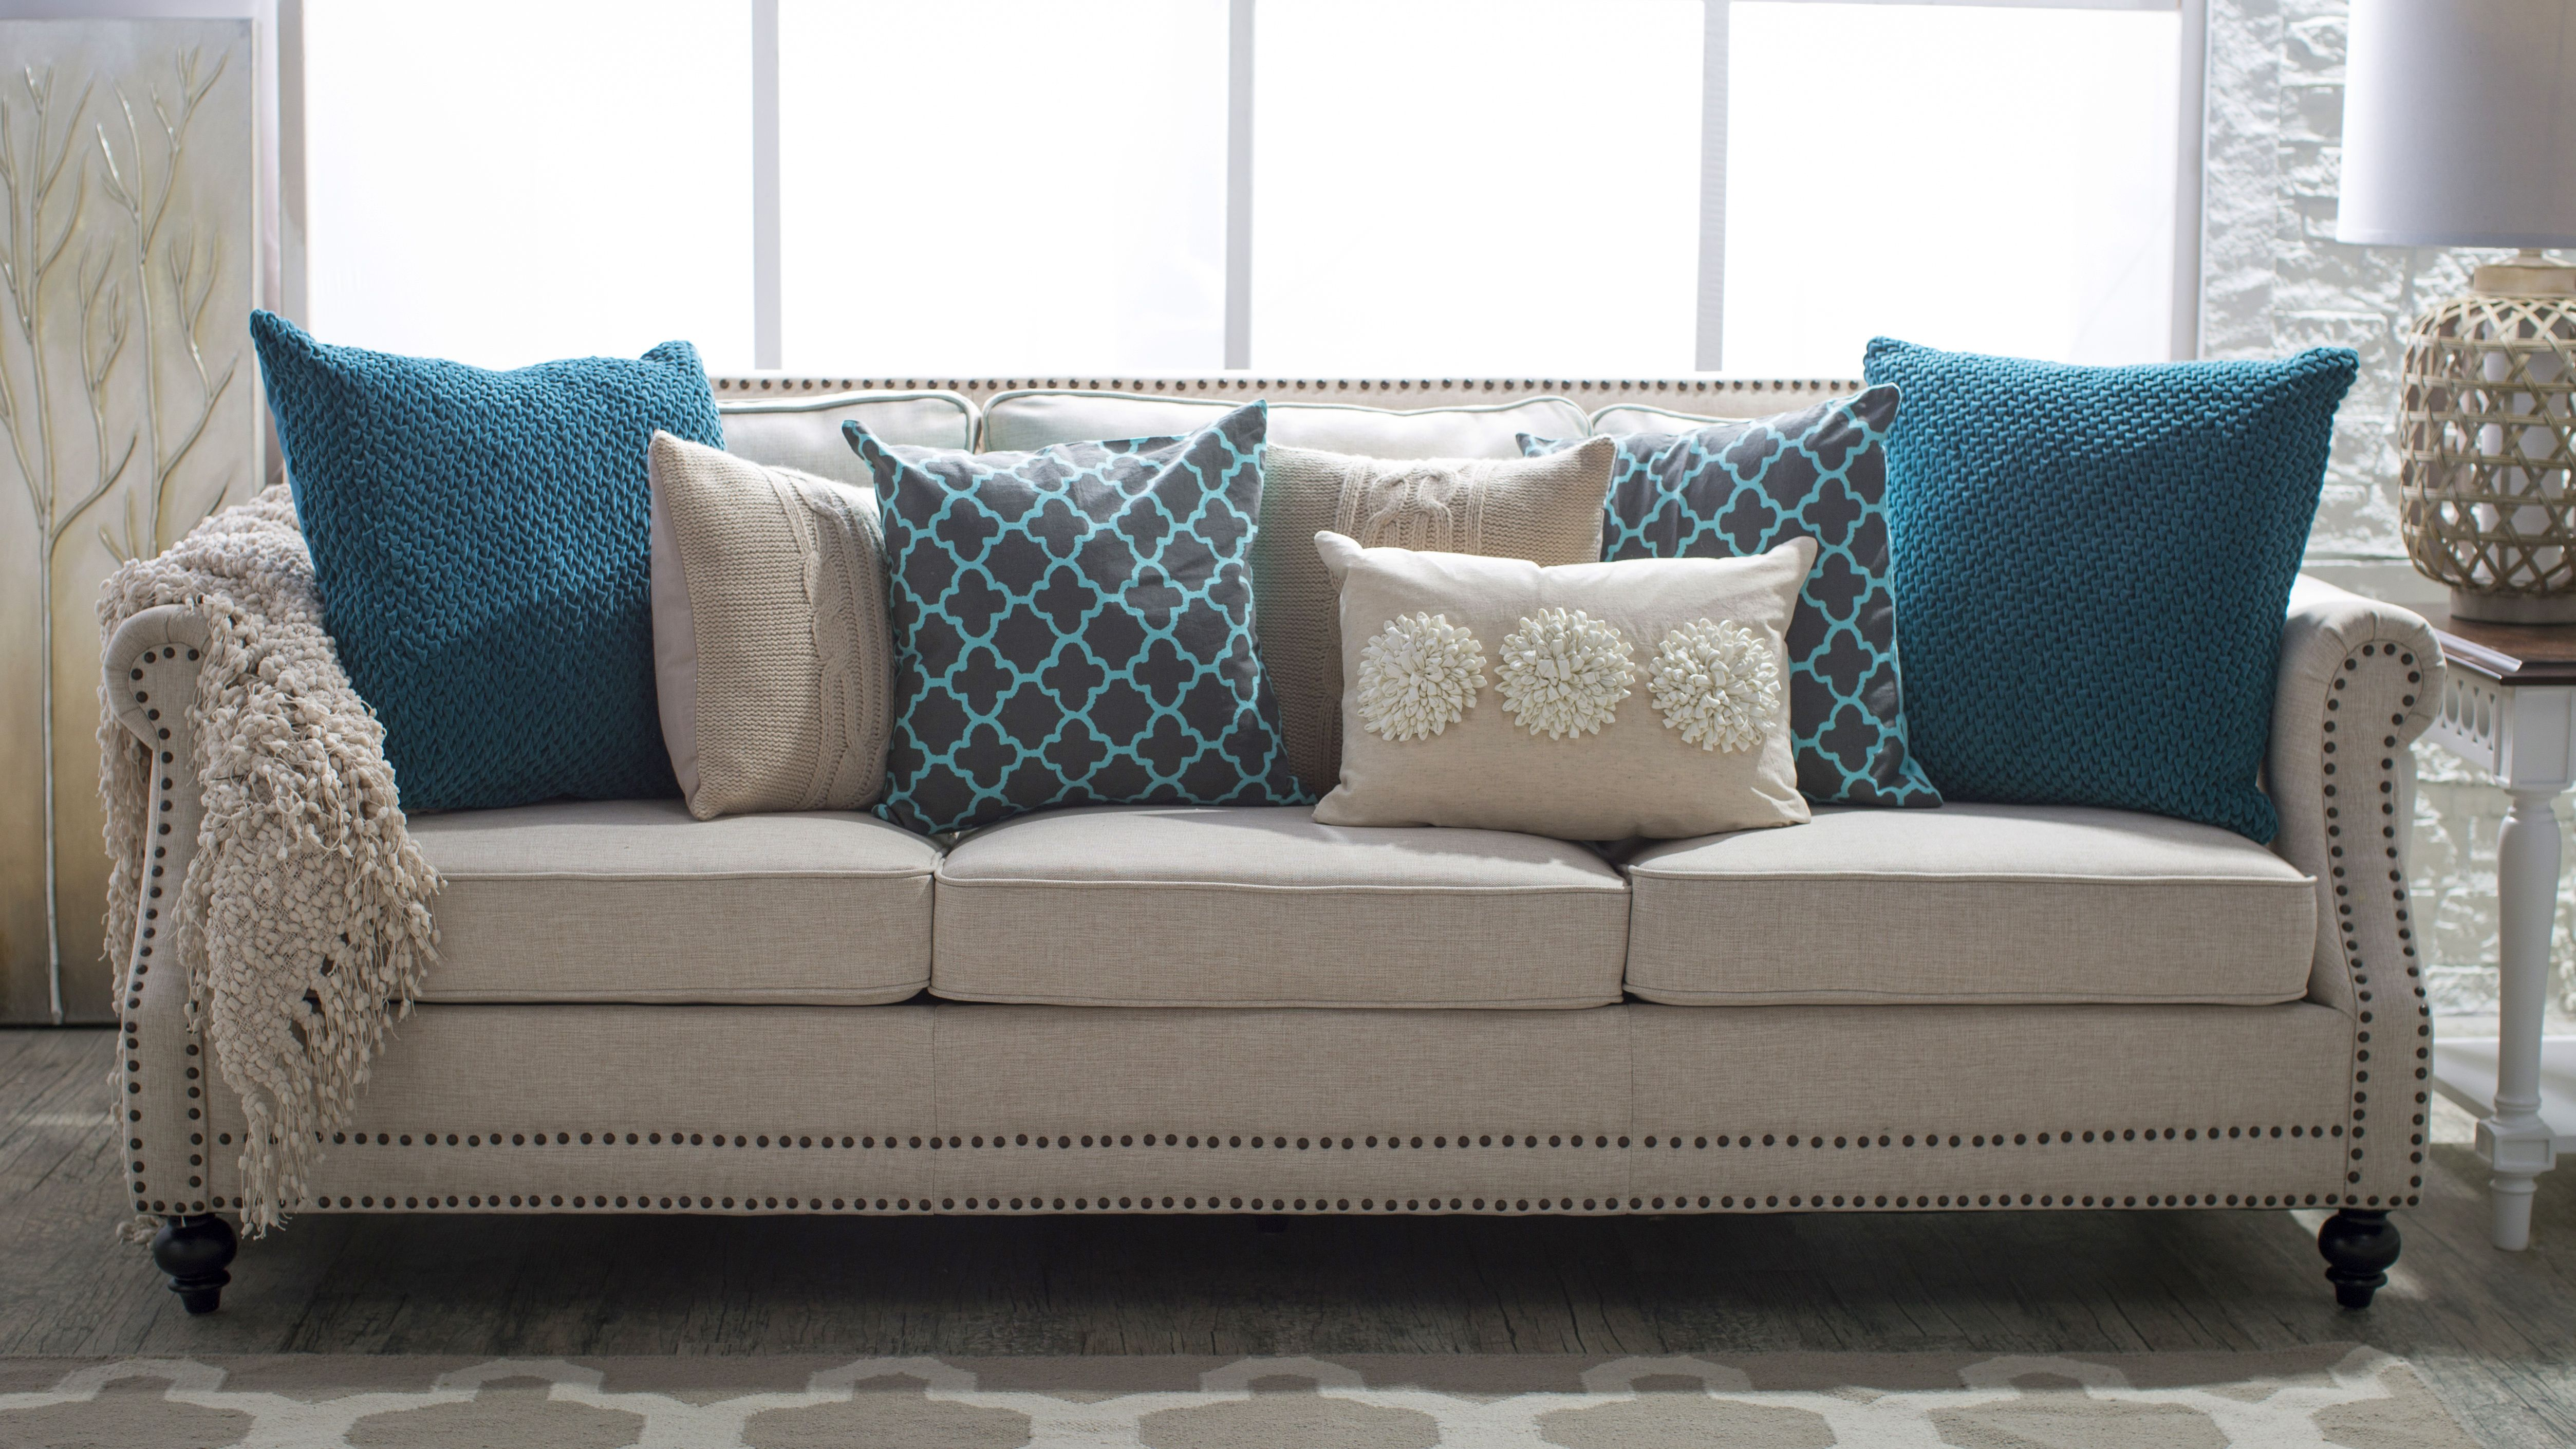 teal and cream throw pillows home staging in 2019 beige sofa rh pinterest com